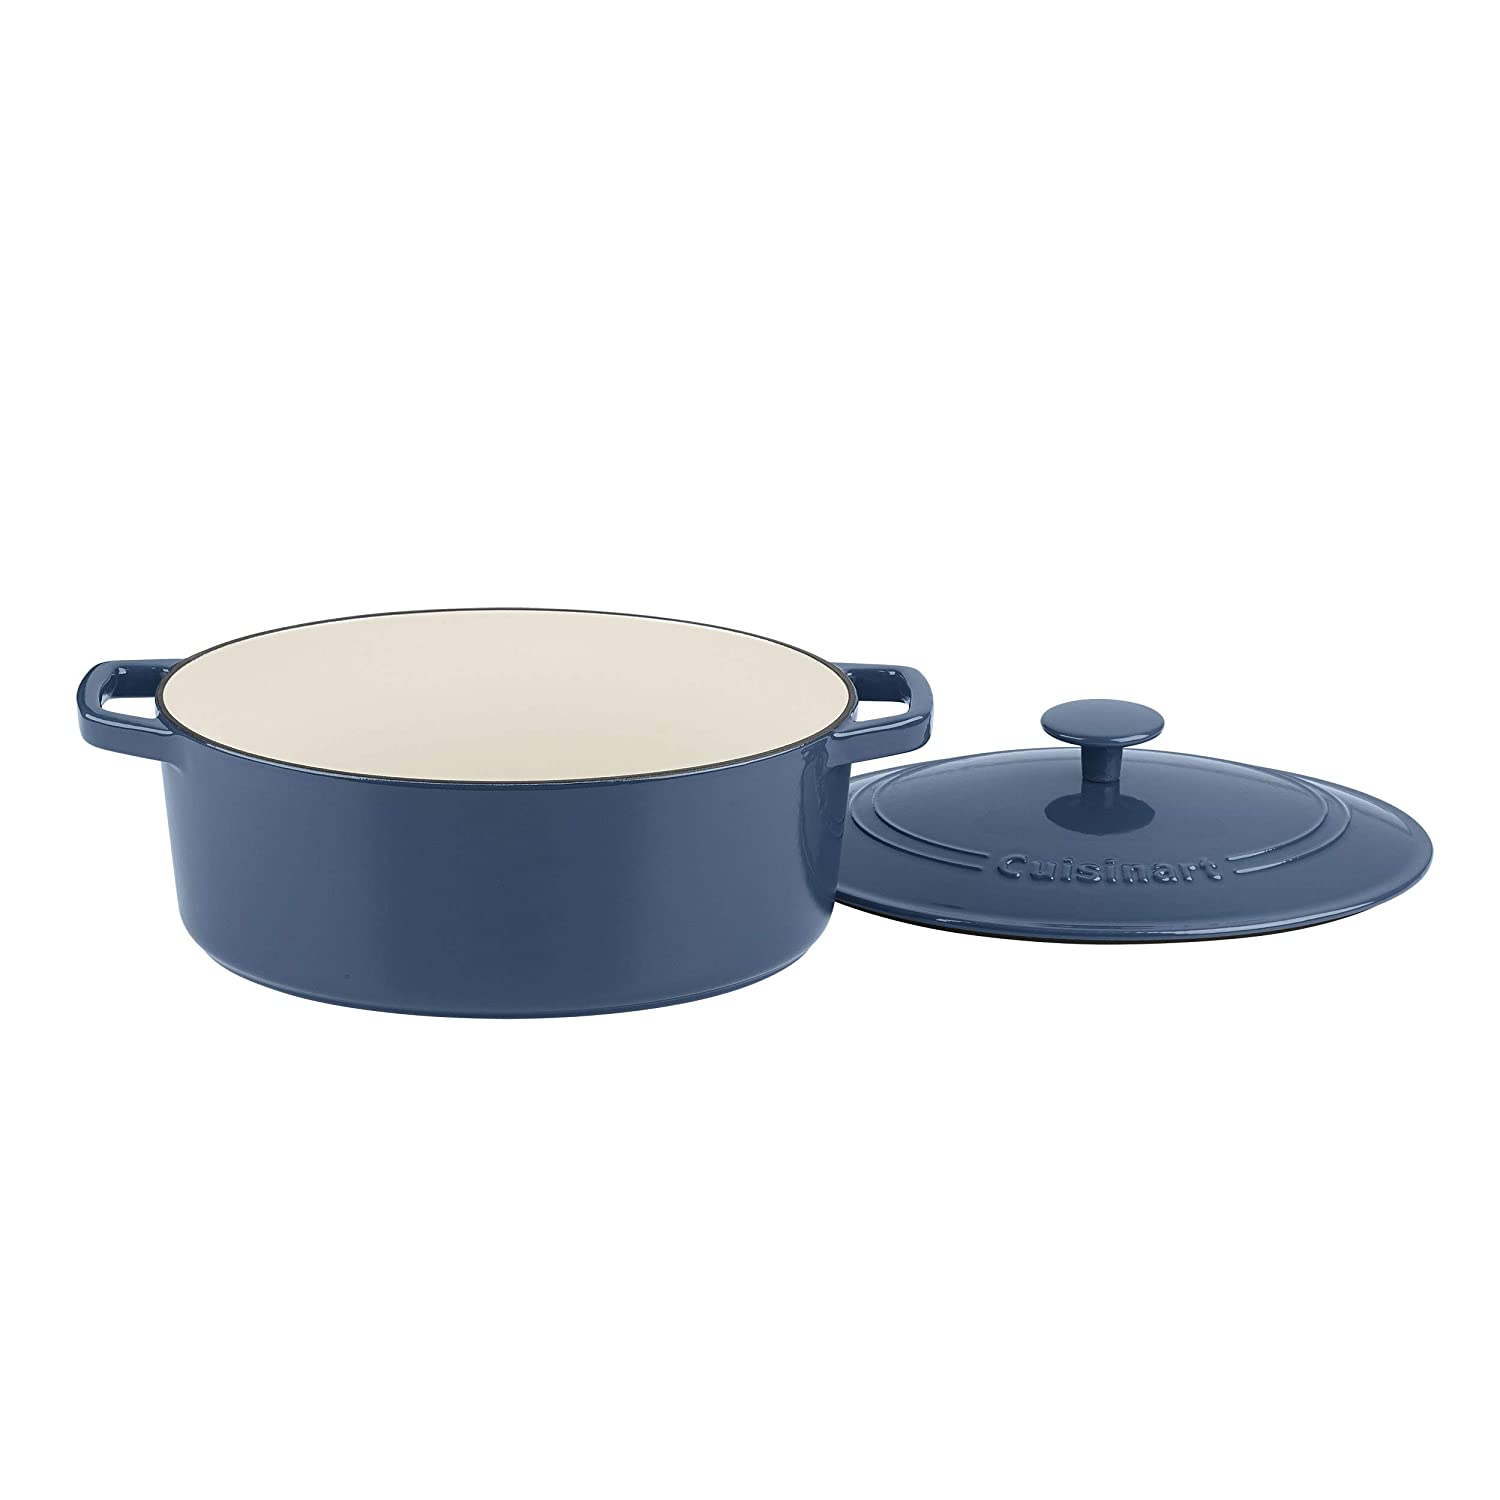 Cuisinart CI755-30BG Cast Iron Casserole 5.5 Qt Oval Covered, Enameled Provencial Blue